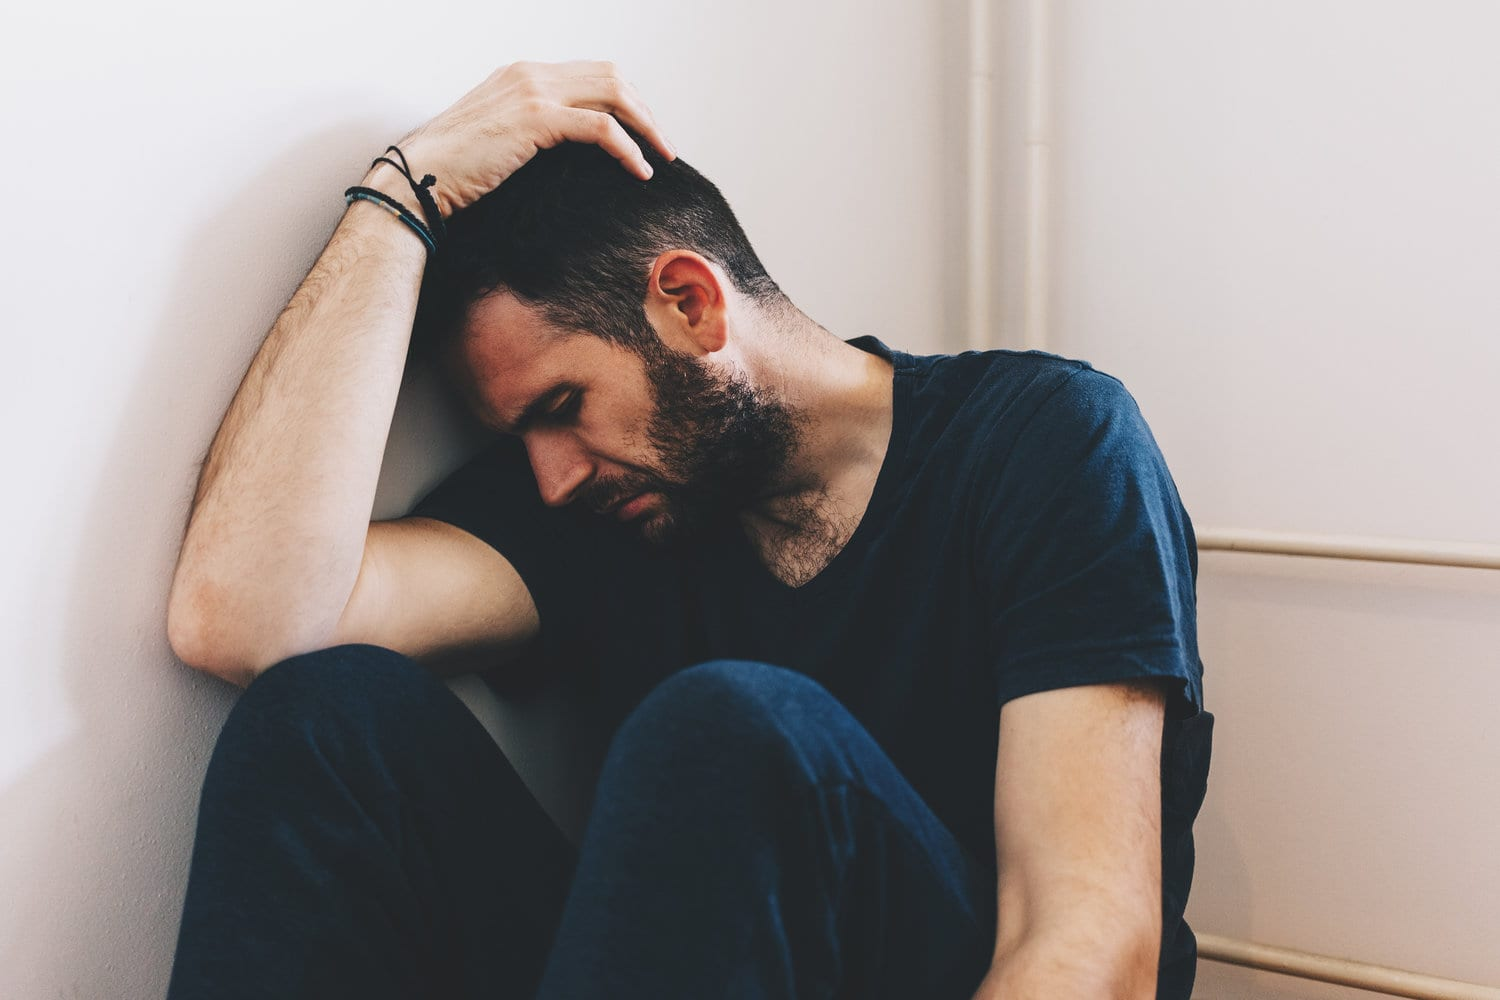 Divorce And Separation Counselling Melbourne - Sad young man sitting in the corner of the room